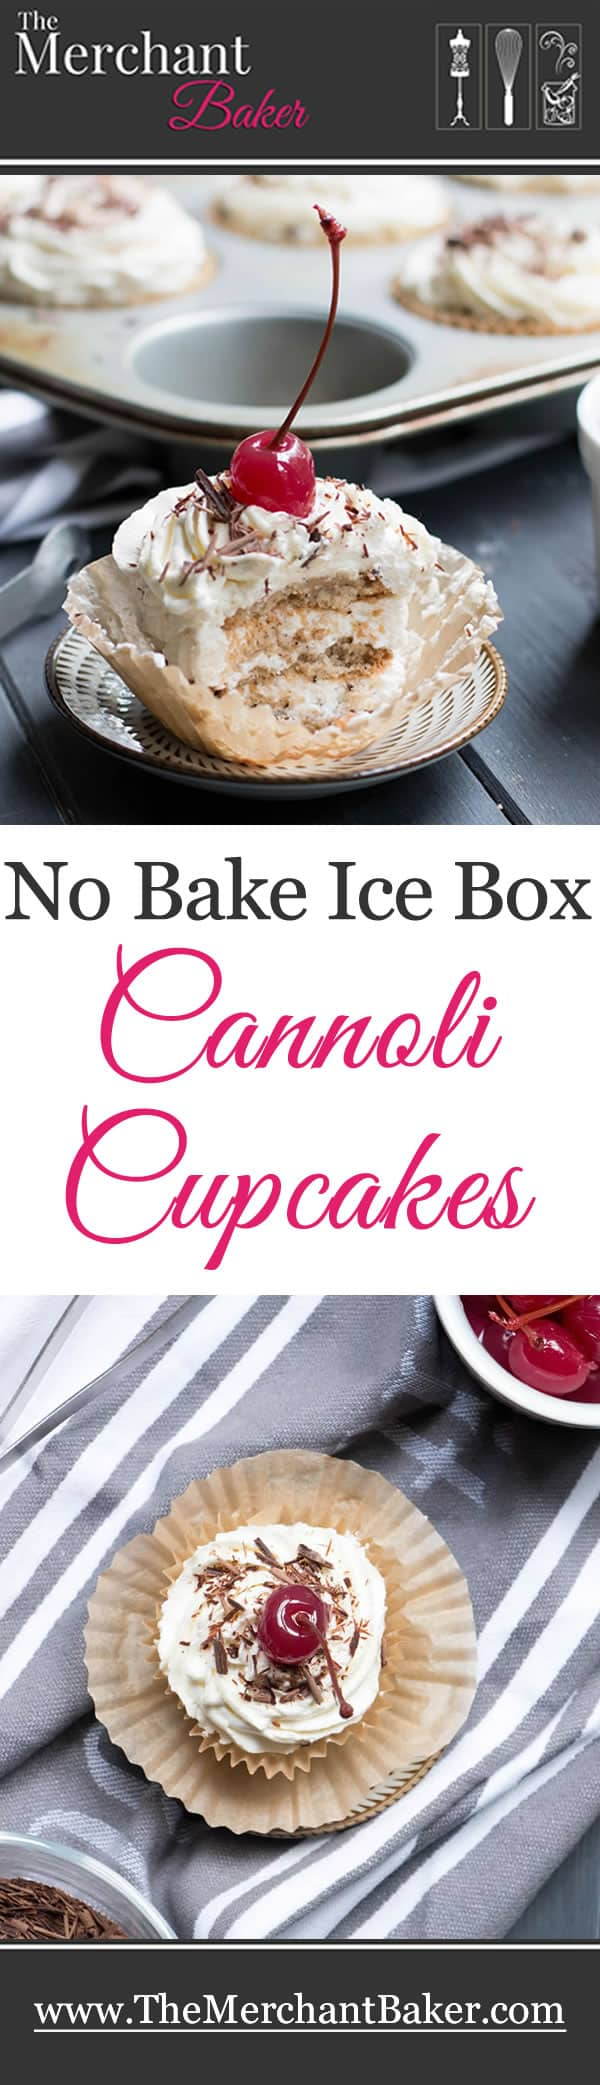 No Bake Ice Box Cannoli Cupcakes